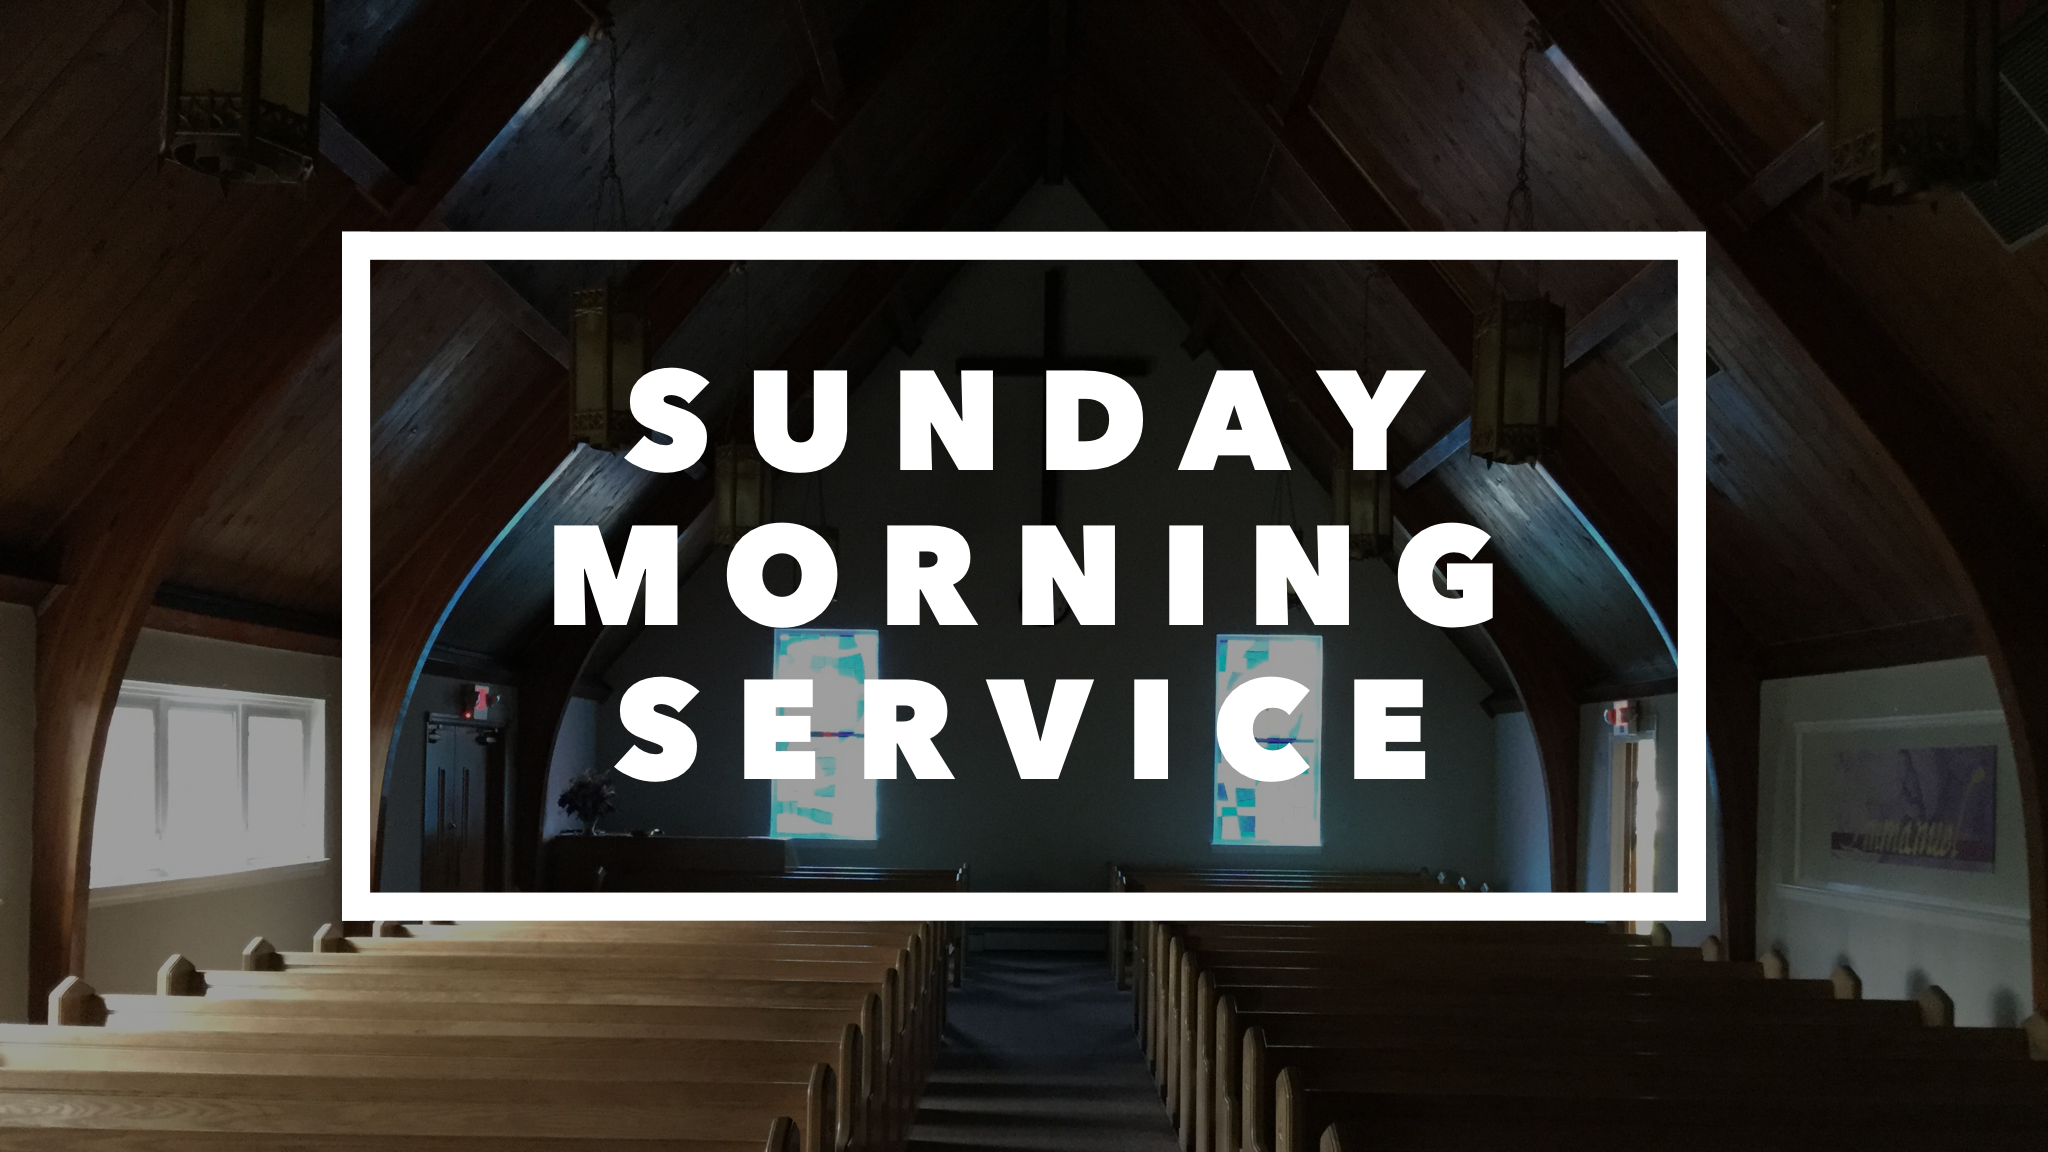 Sunday Morning Service.PNG image